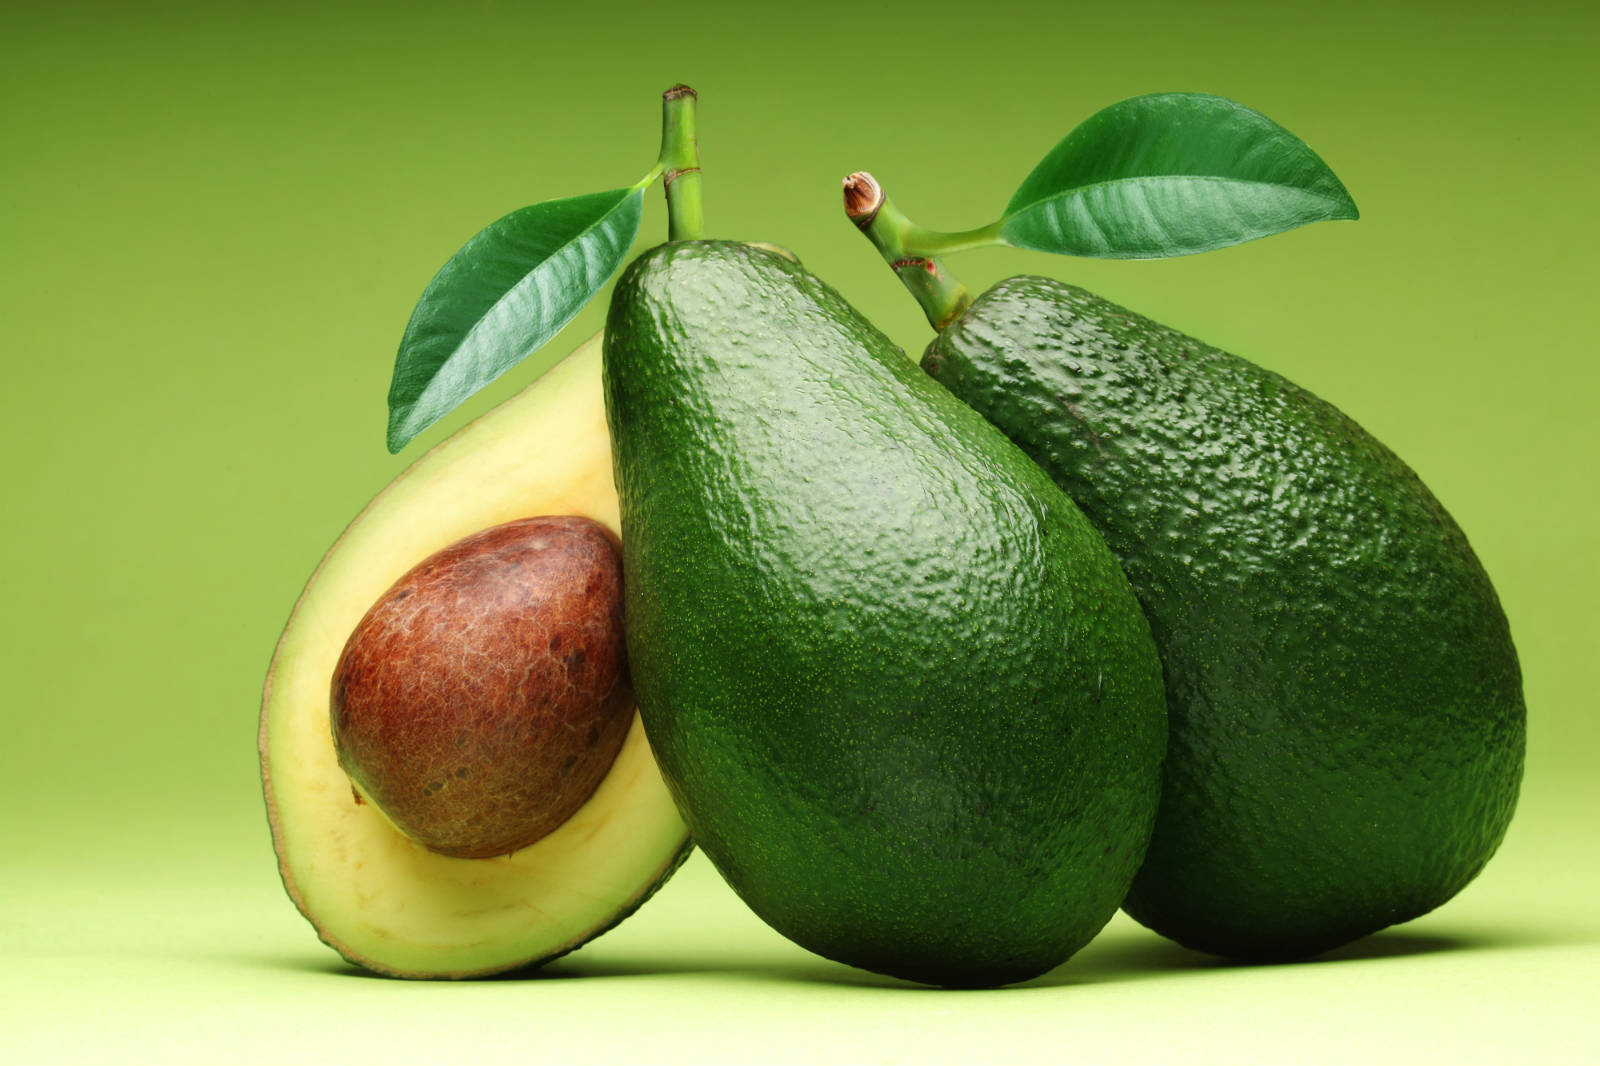 Avocado is the king of Superfoods